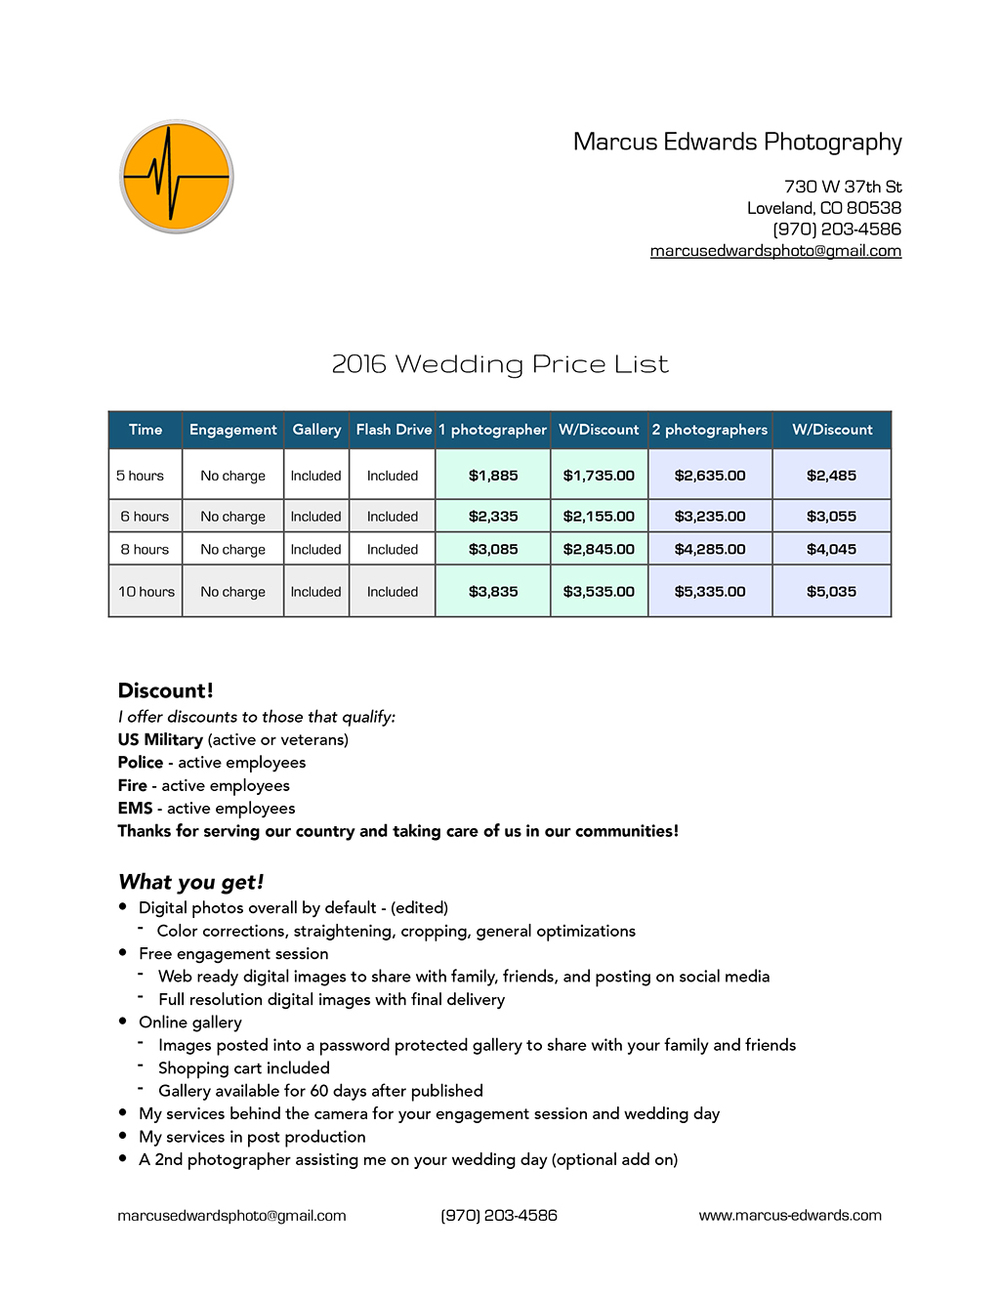 2016 Wedding Price List